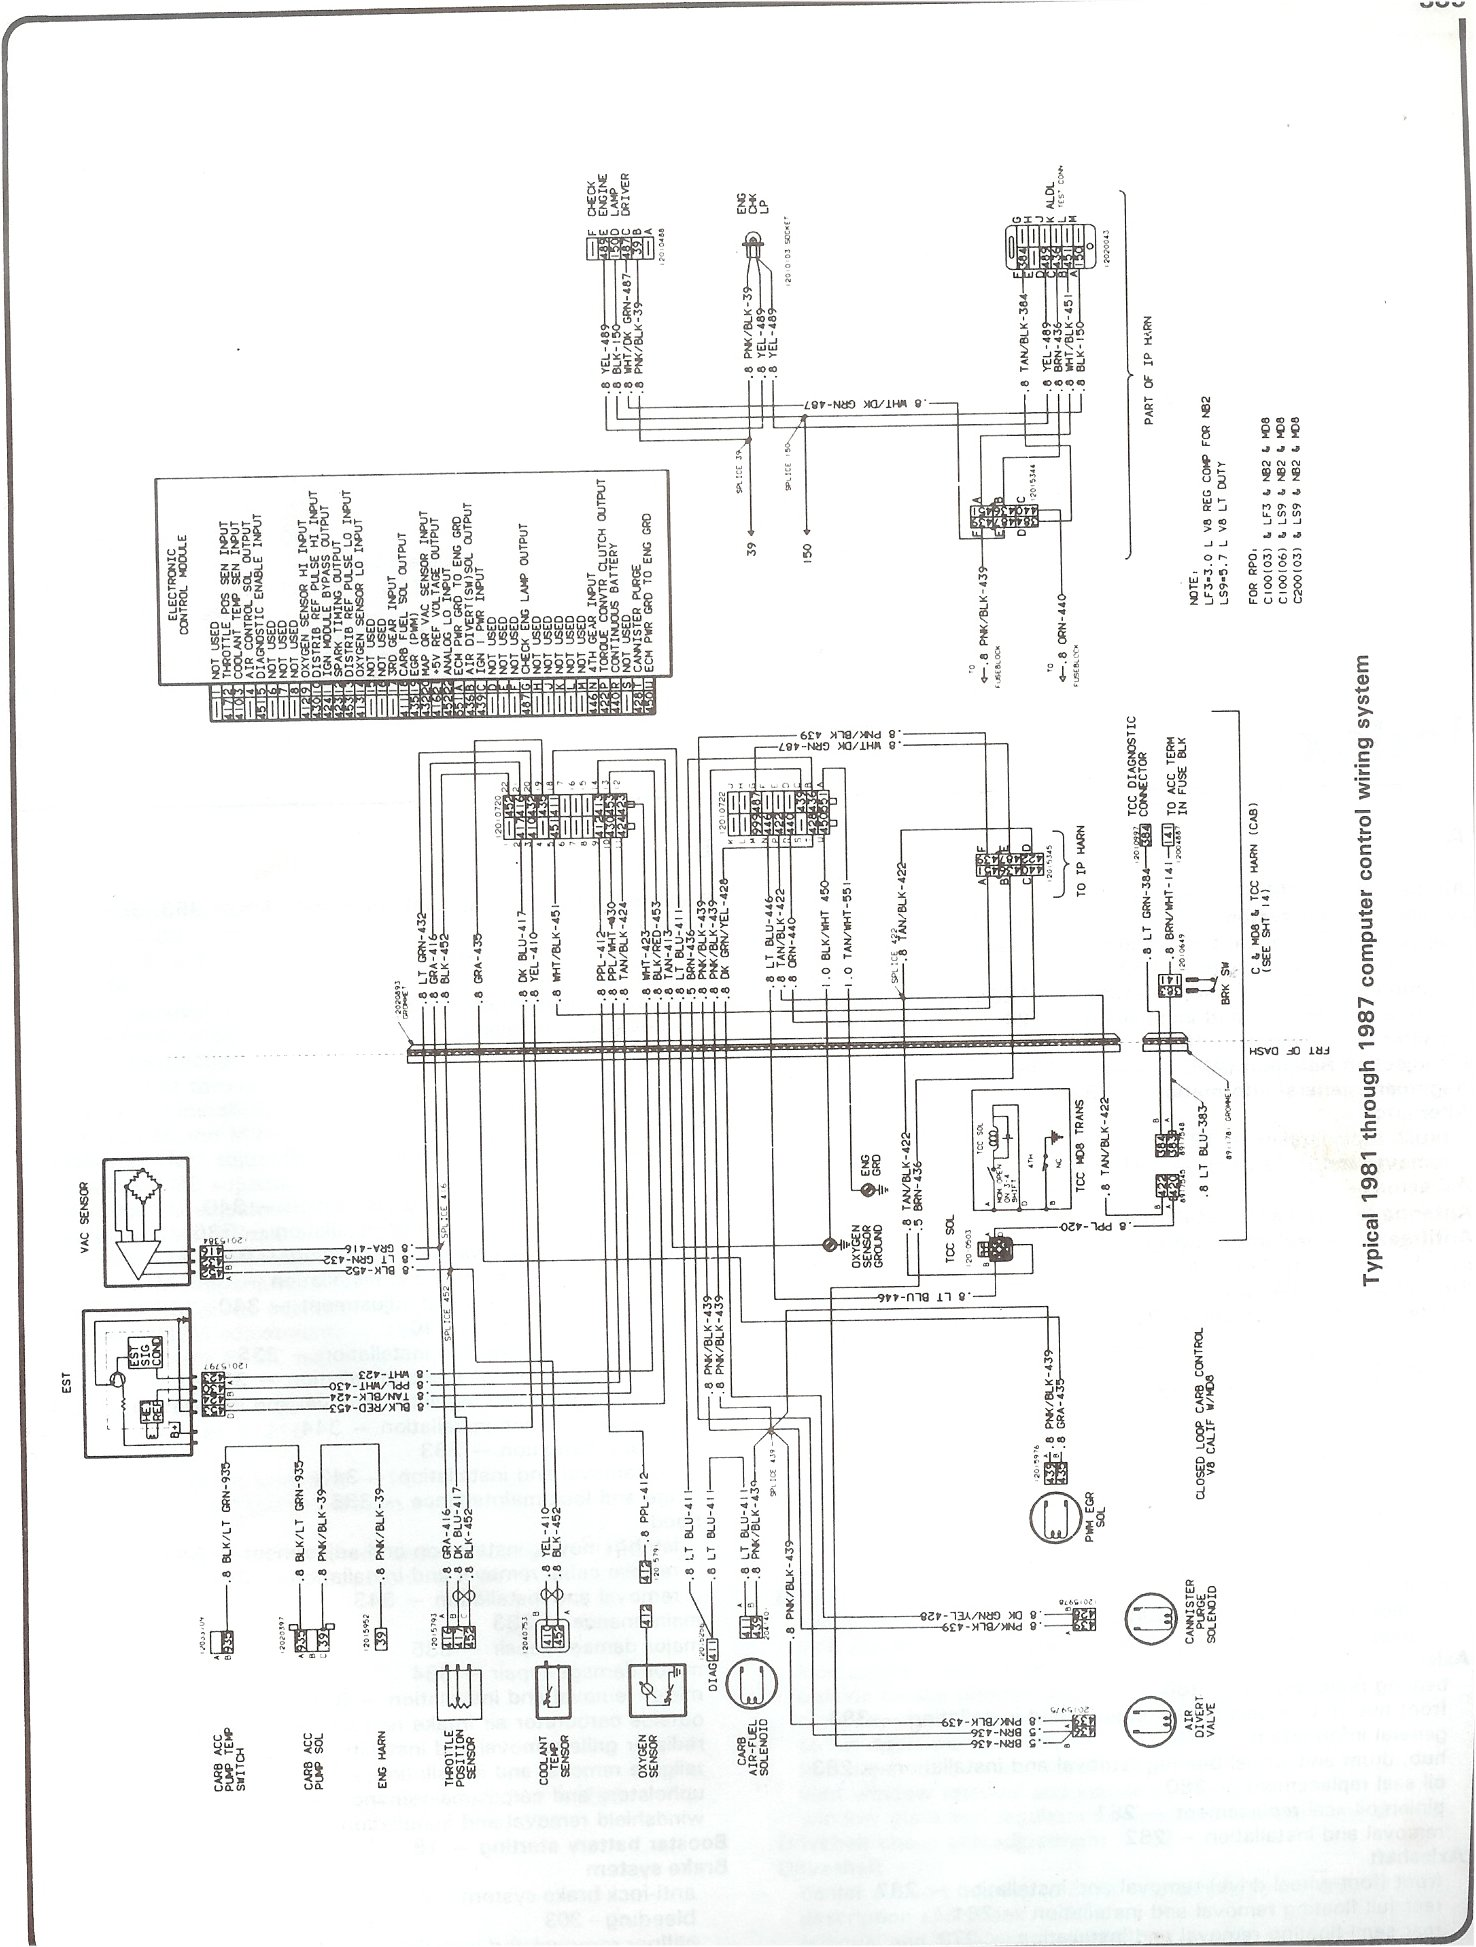 81 87_computer_control_wiring complete 73 87 wiring diagrams 85 Chevy Truck Wiring Diagram at aneh.co